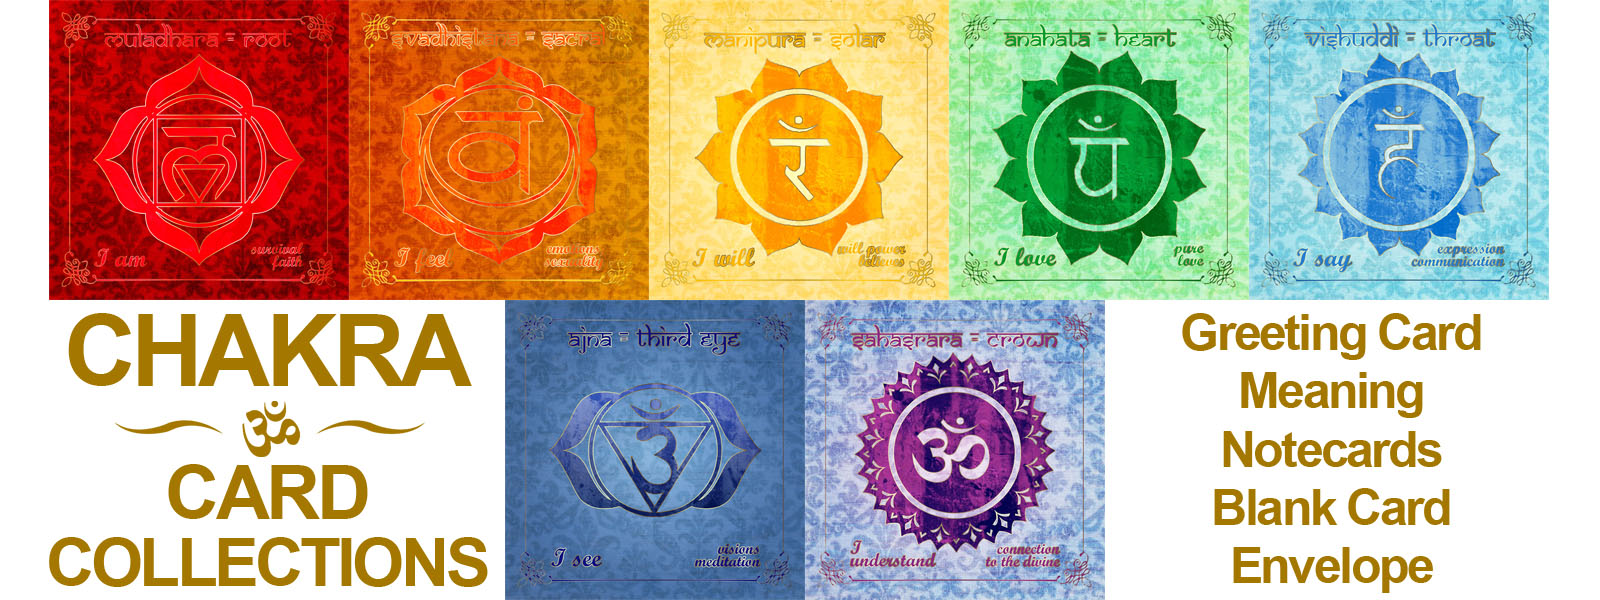 Chakra Card Collections - Greeting Card - Square Cards - Energy Cards - Spirituality,